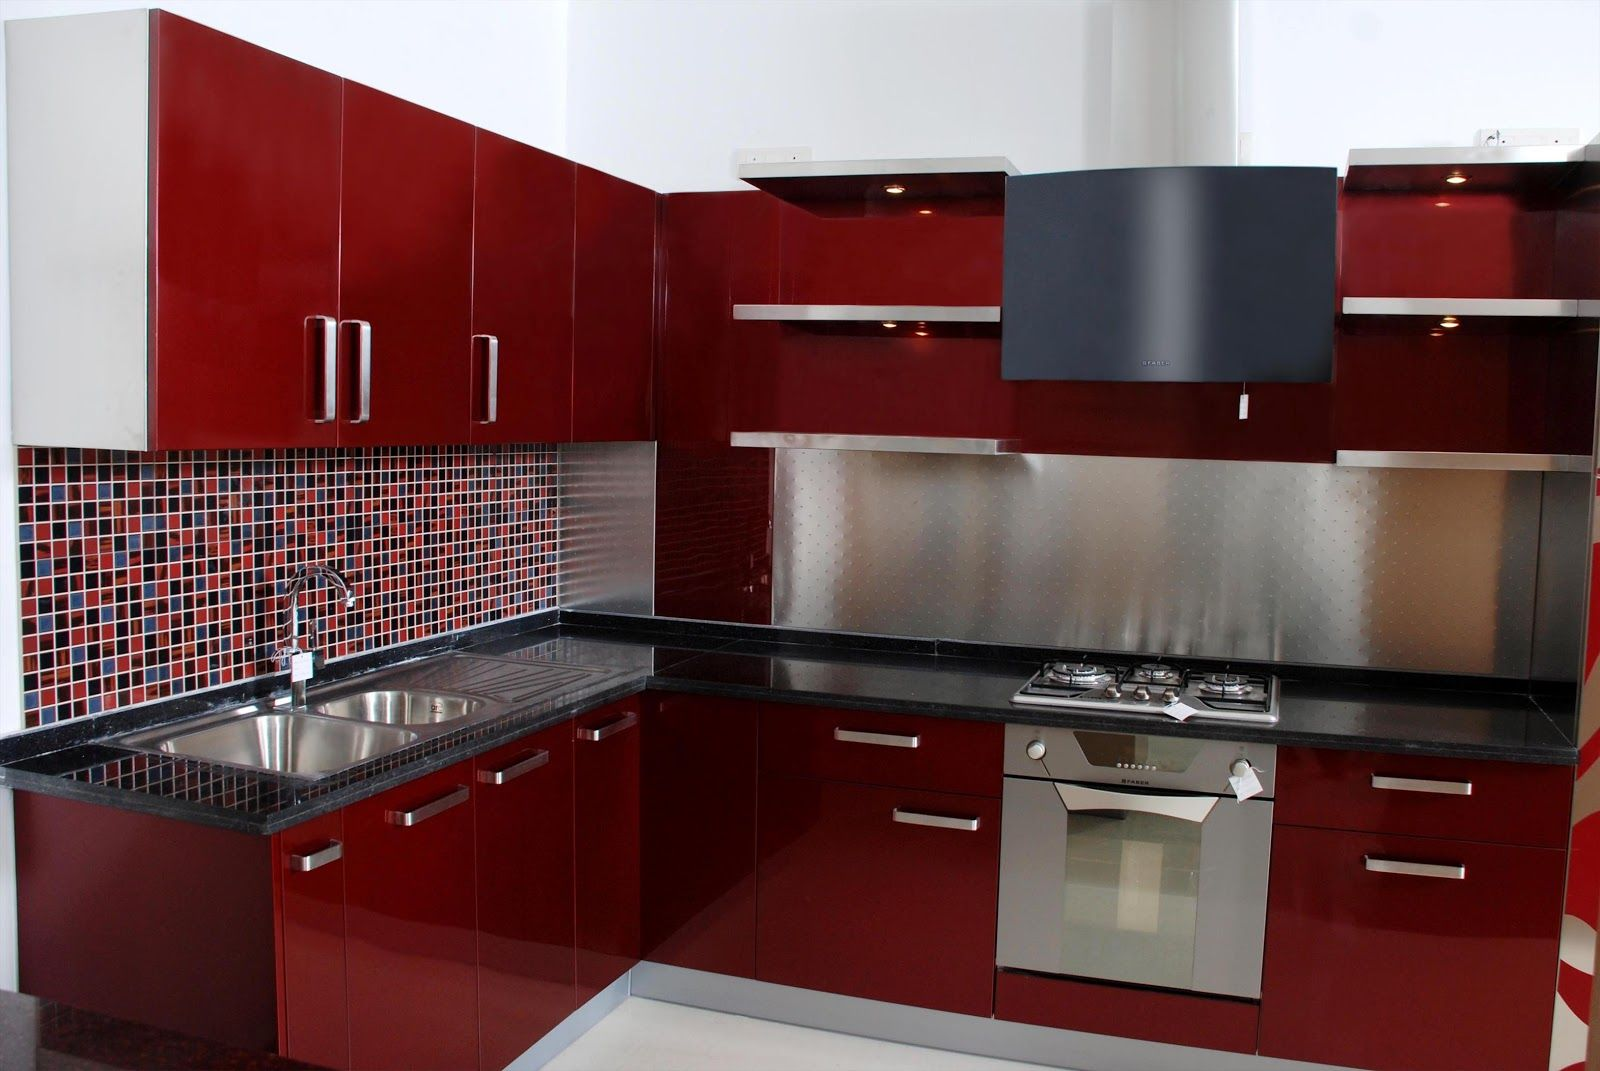 Parallel kitchen design india google search kitchen pinterest kitchen design kitchens Modular kitchen design colors